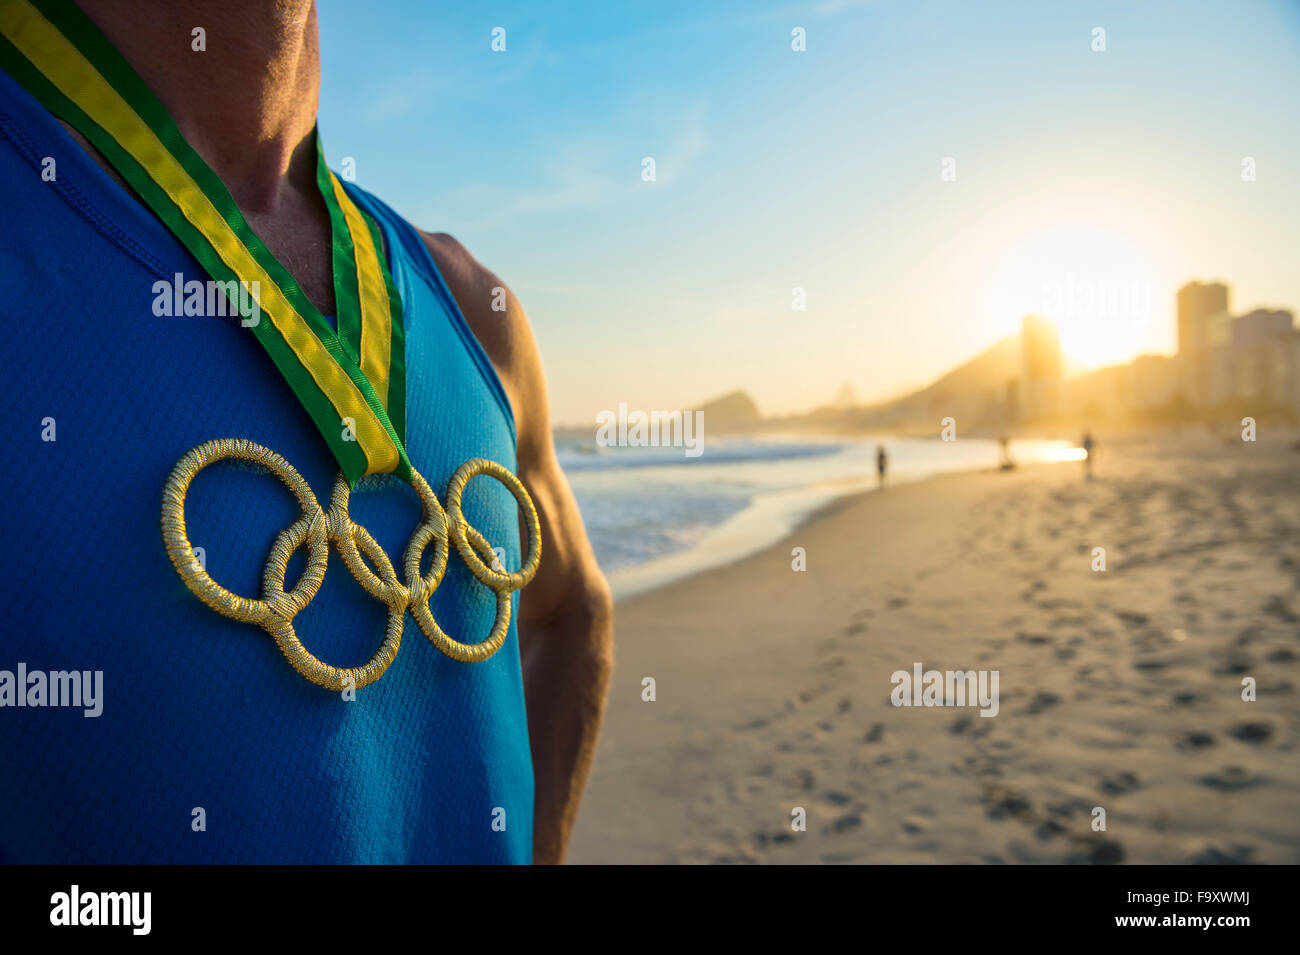 RIO DE JANEIRO, BRAZIL - OCTOBER 30, 2015: Athlete wearing Olympic rings gold medal stands at a sunset view of Copacabana - Stock Image